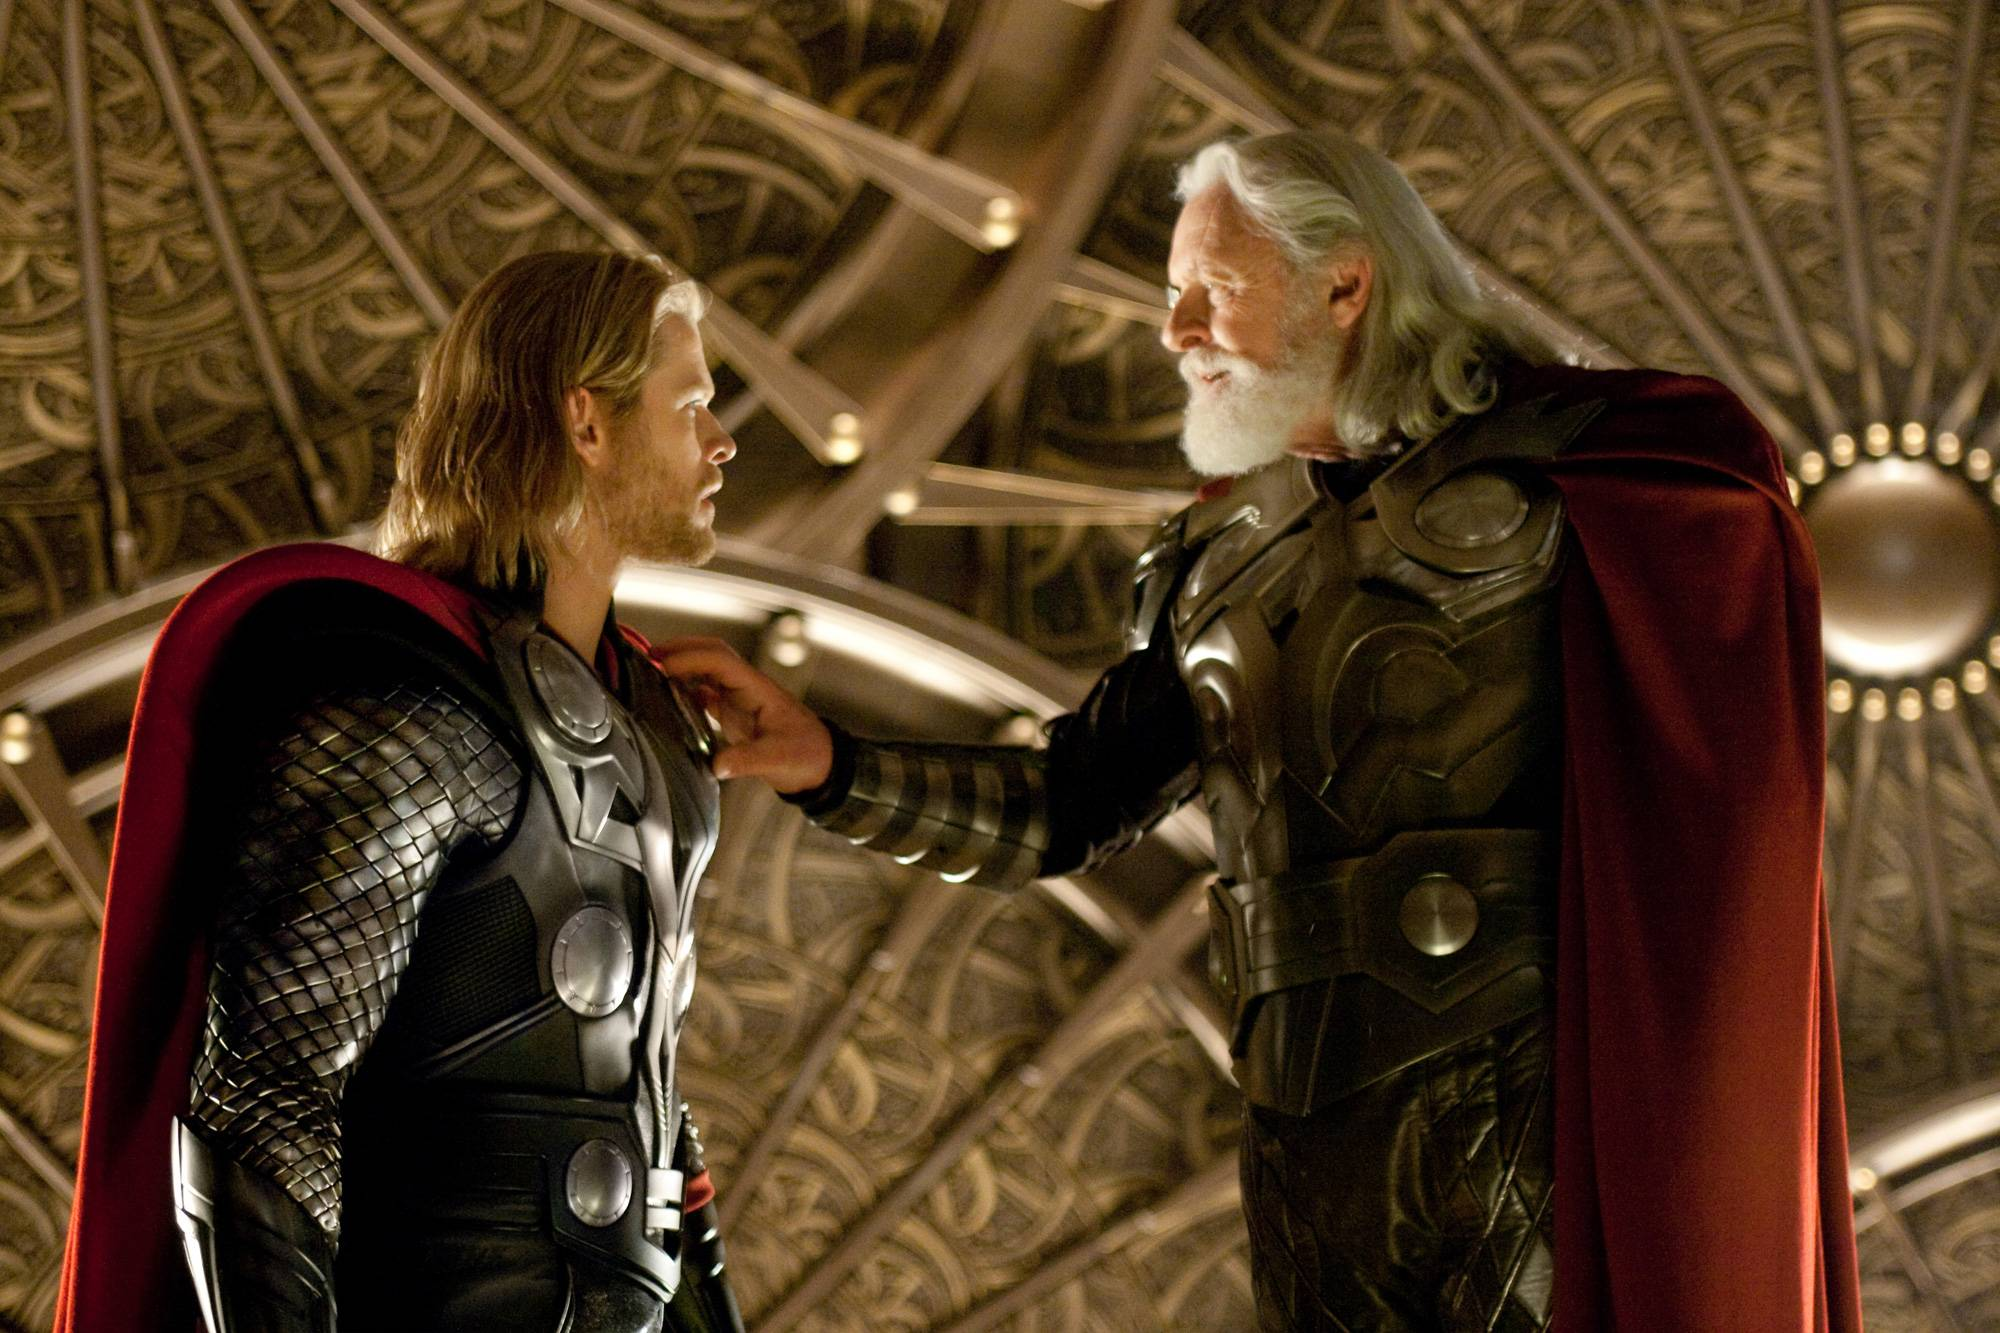 Pictorial representation of Odin and the most powerful Thor.